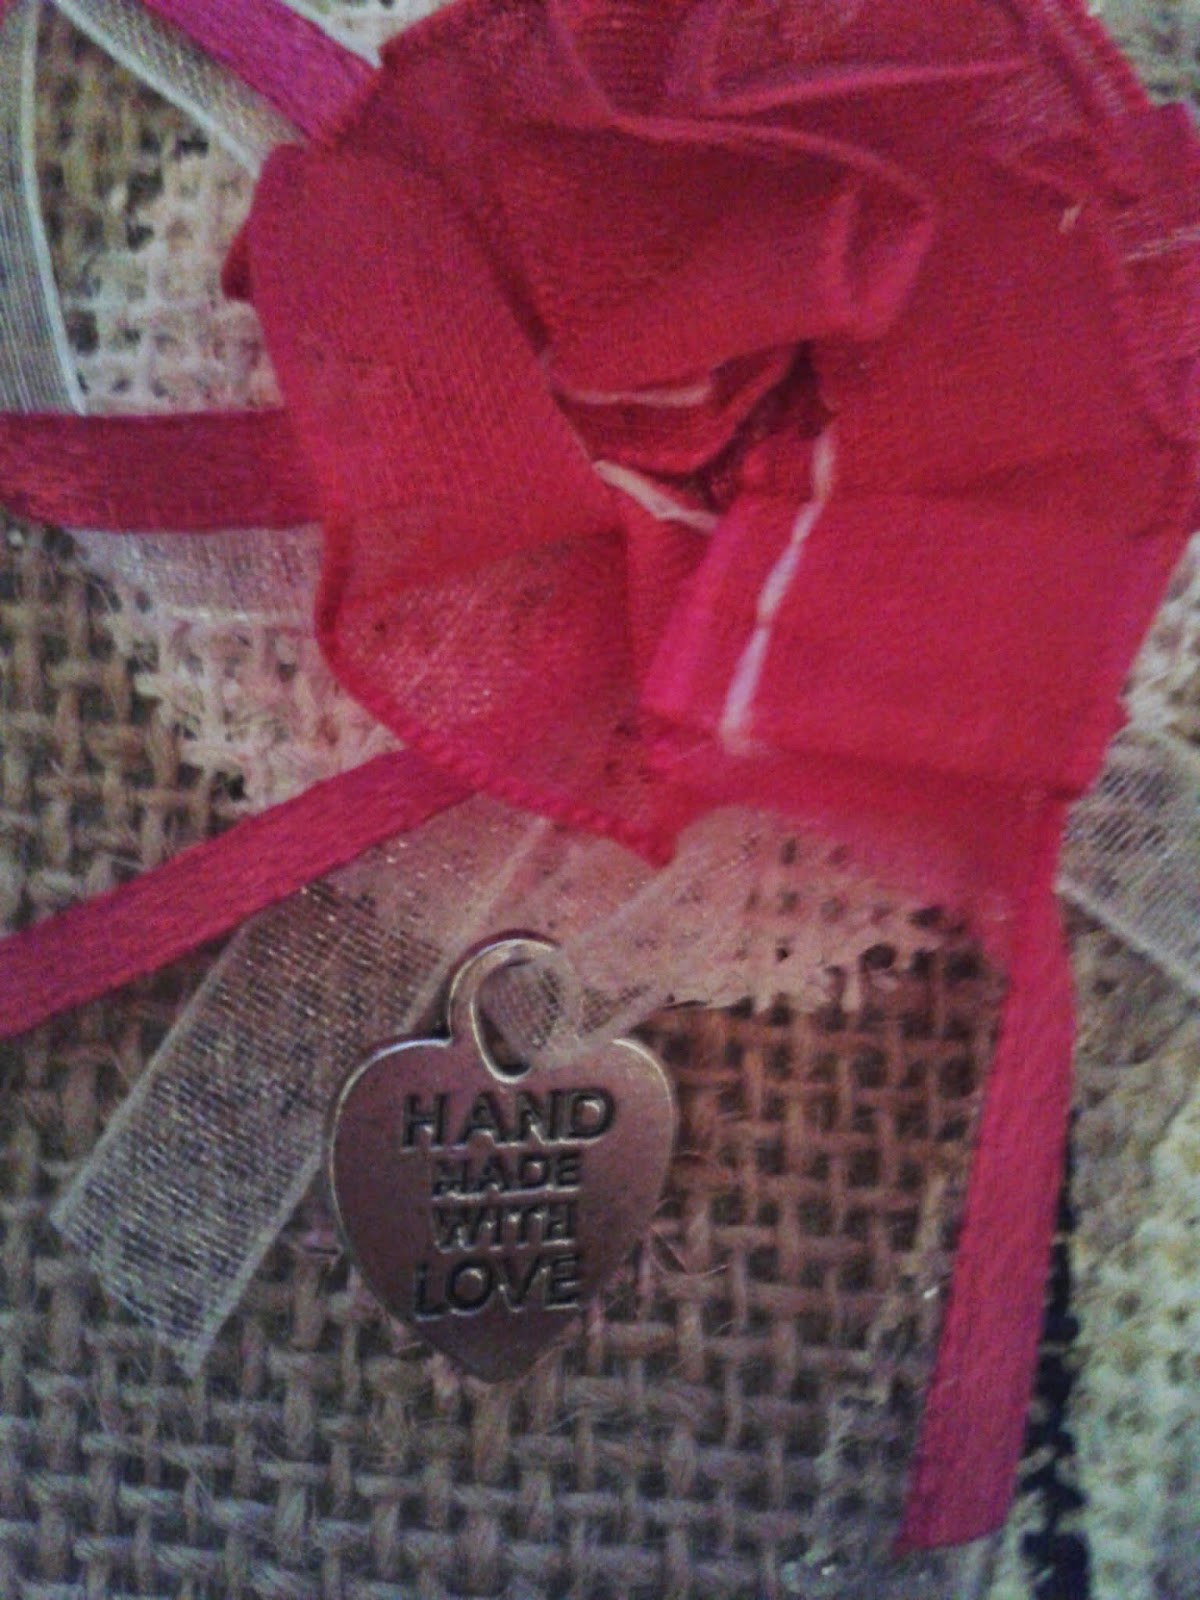 Hand Made With Love silver charm